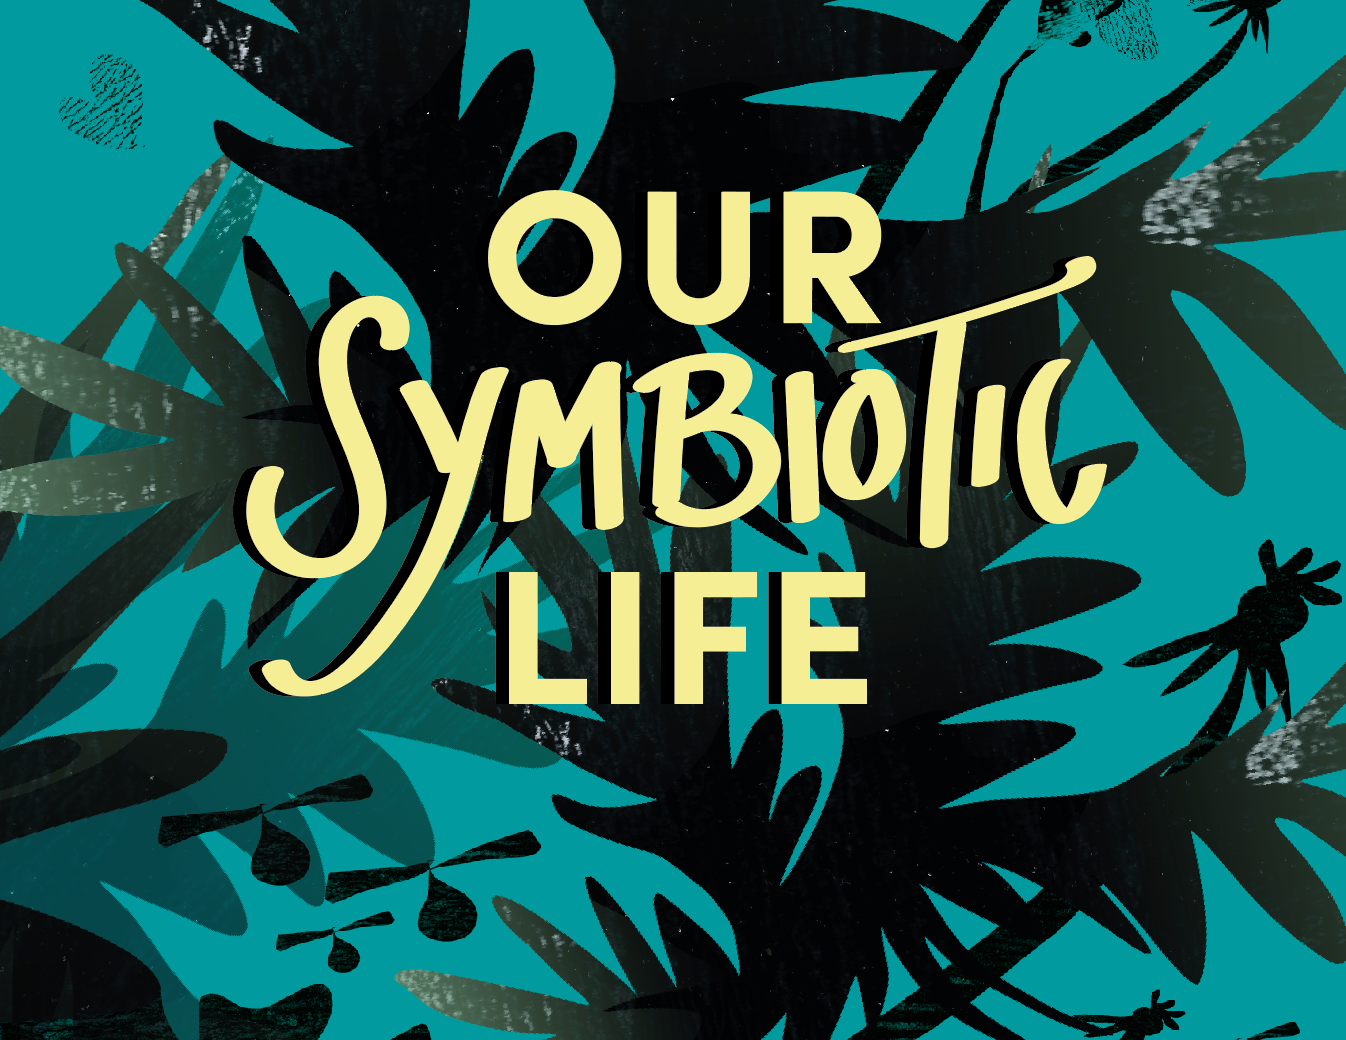 OUR SYMBIOTIC LIFE – An exploration of plausible  interspecies relations